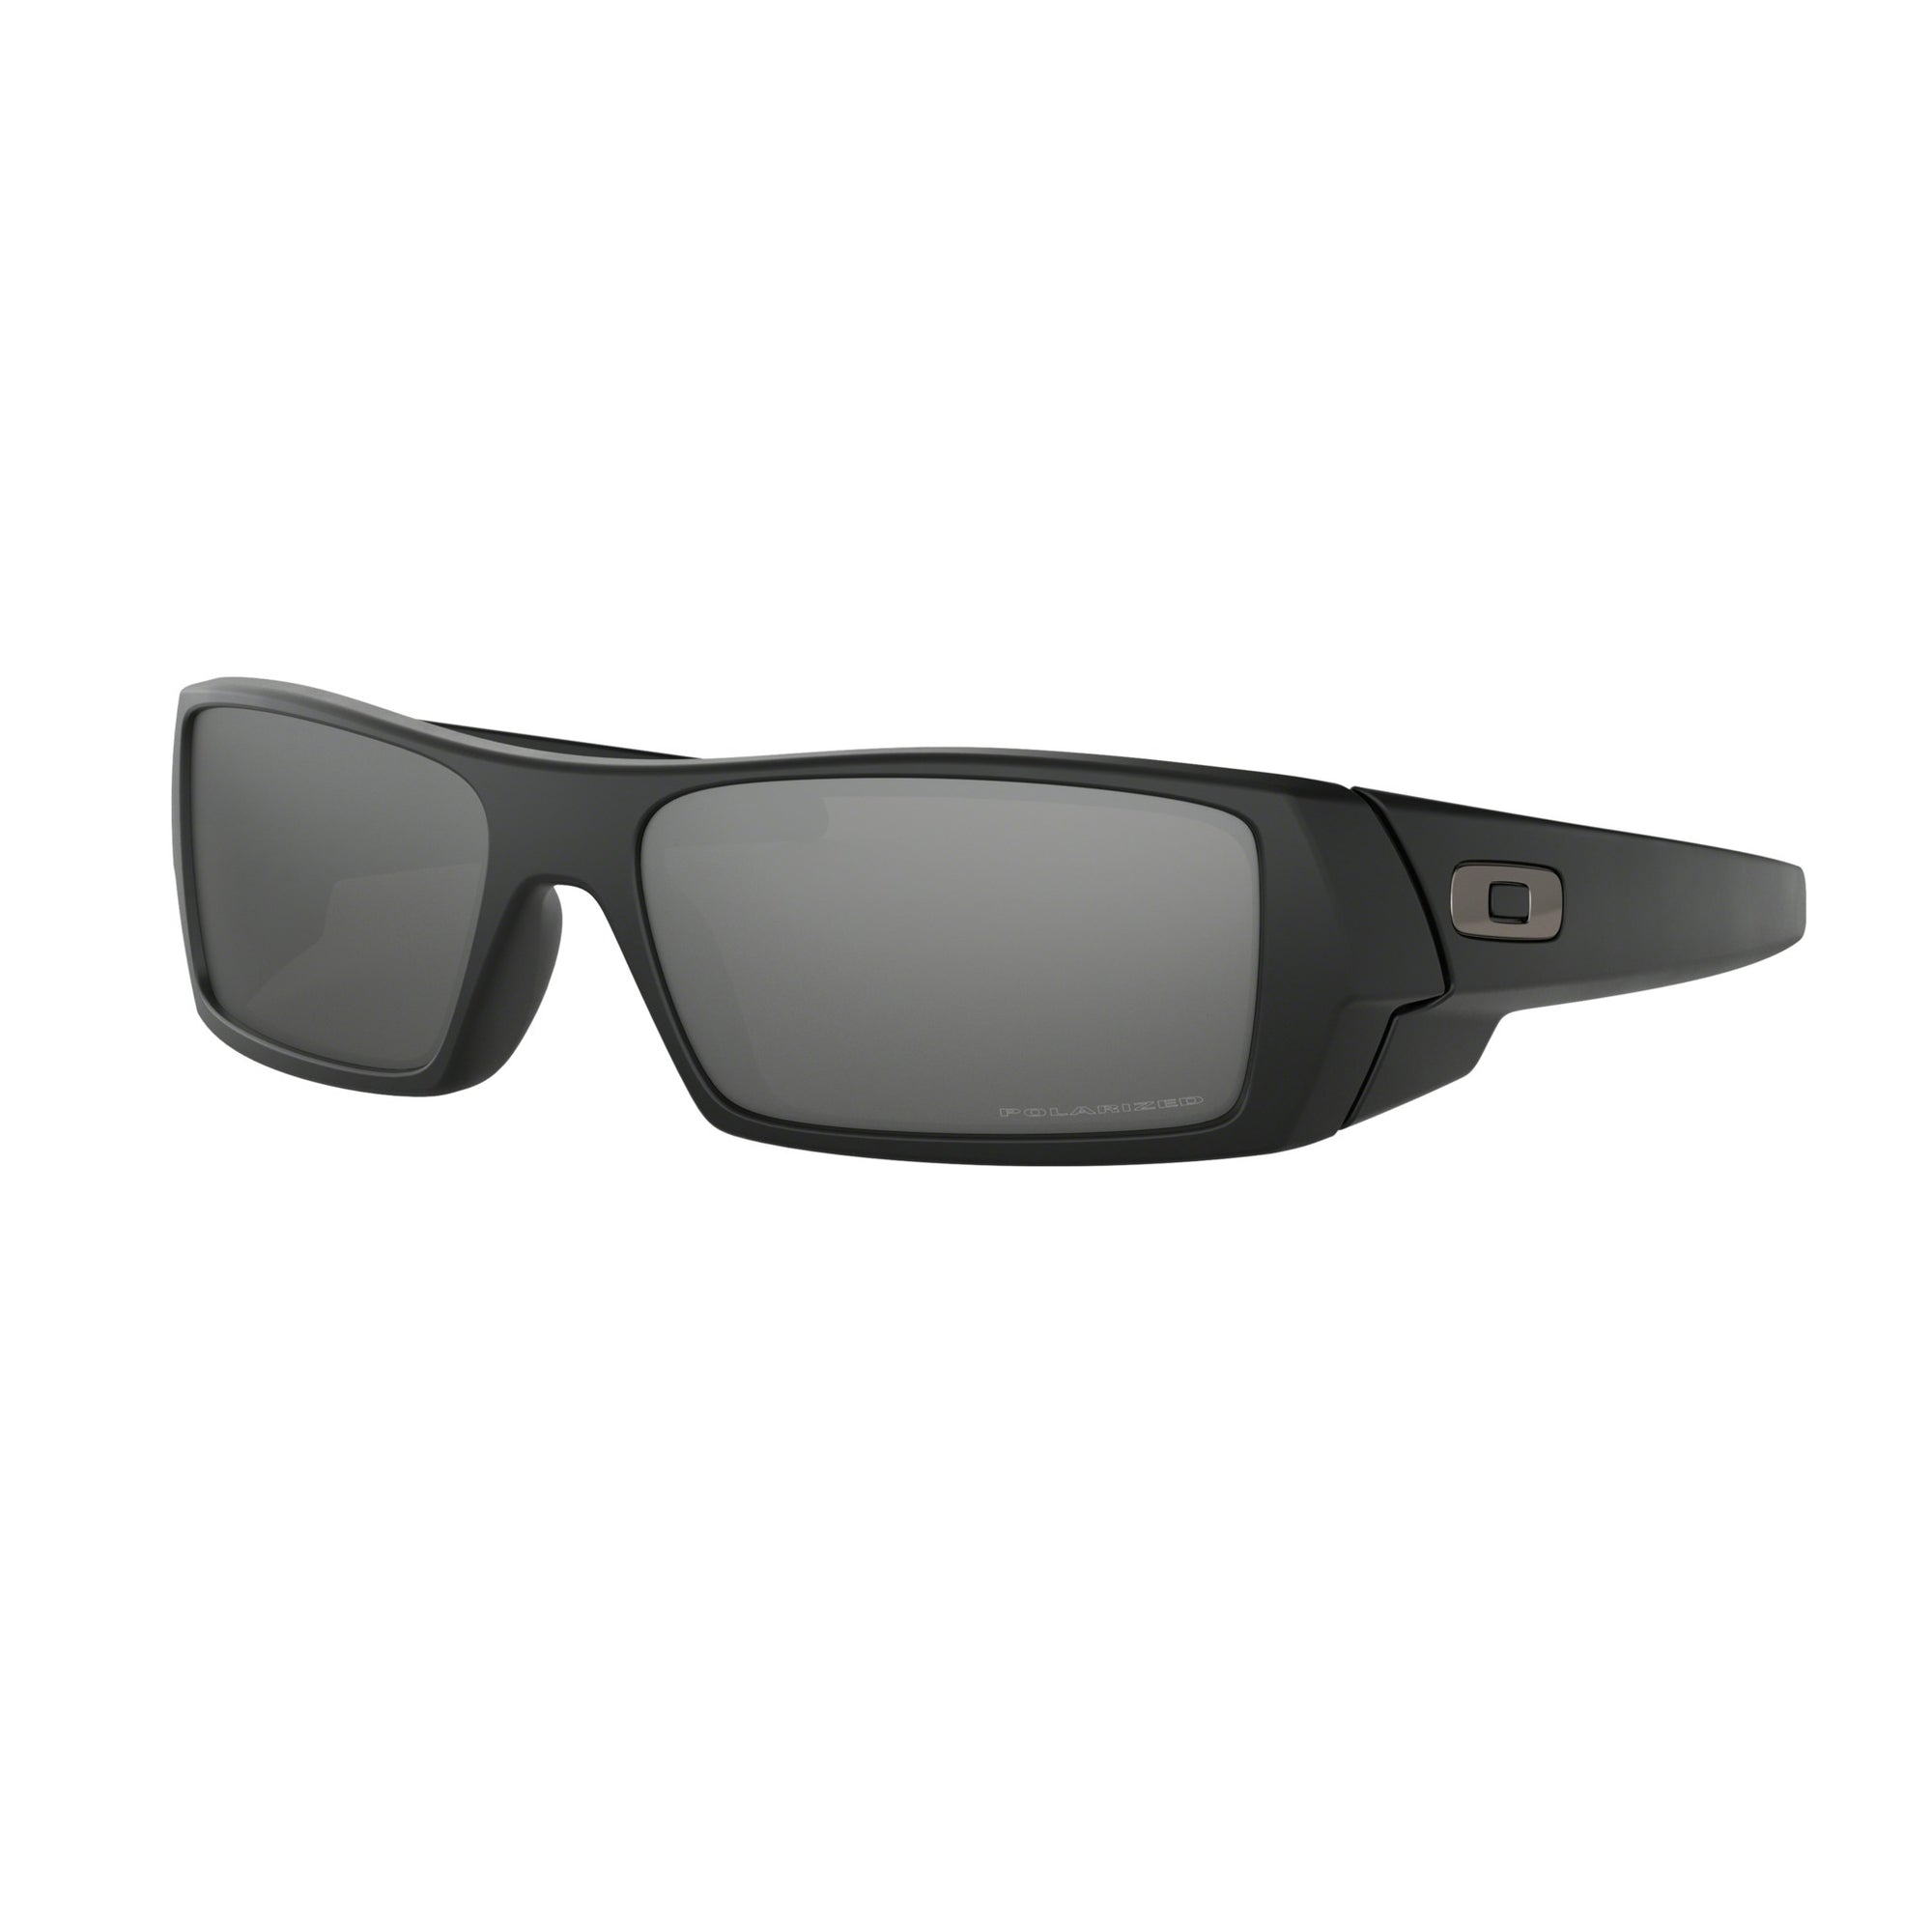 Oakley Gascan Men's Sunglasses - Polarized - Matte Black/Black Iridium